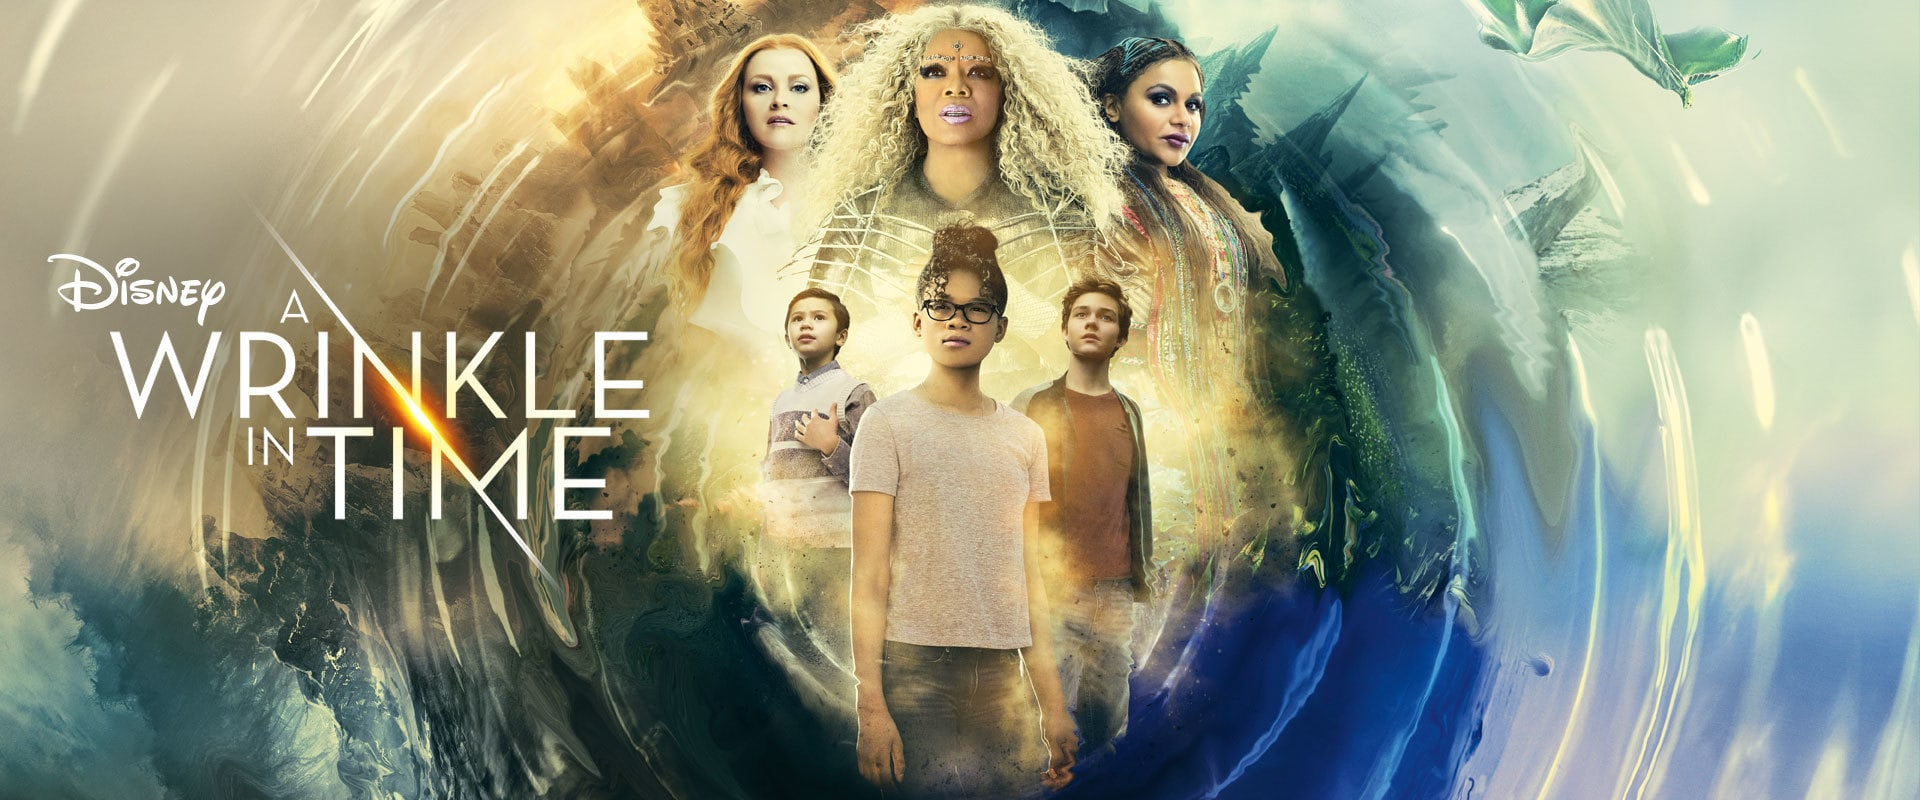 A Wrinkle in Time - Flex-Content Hero Object - video